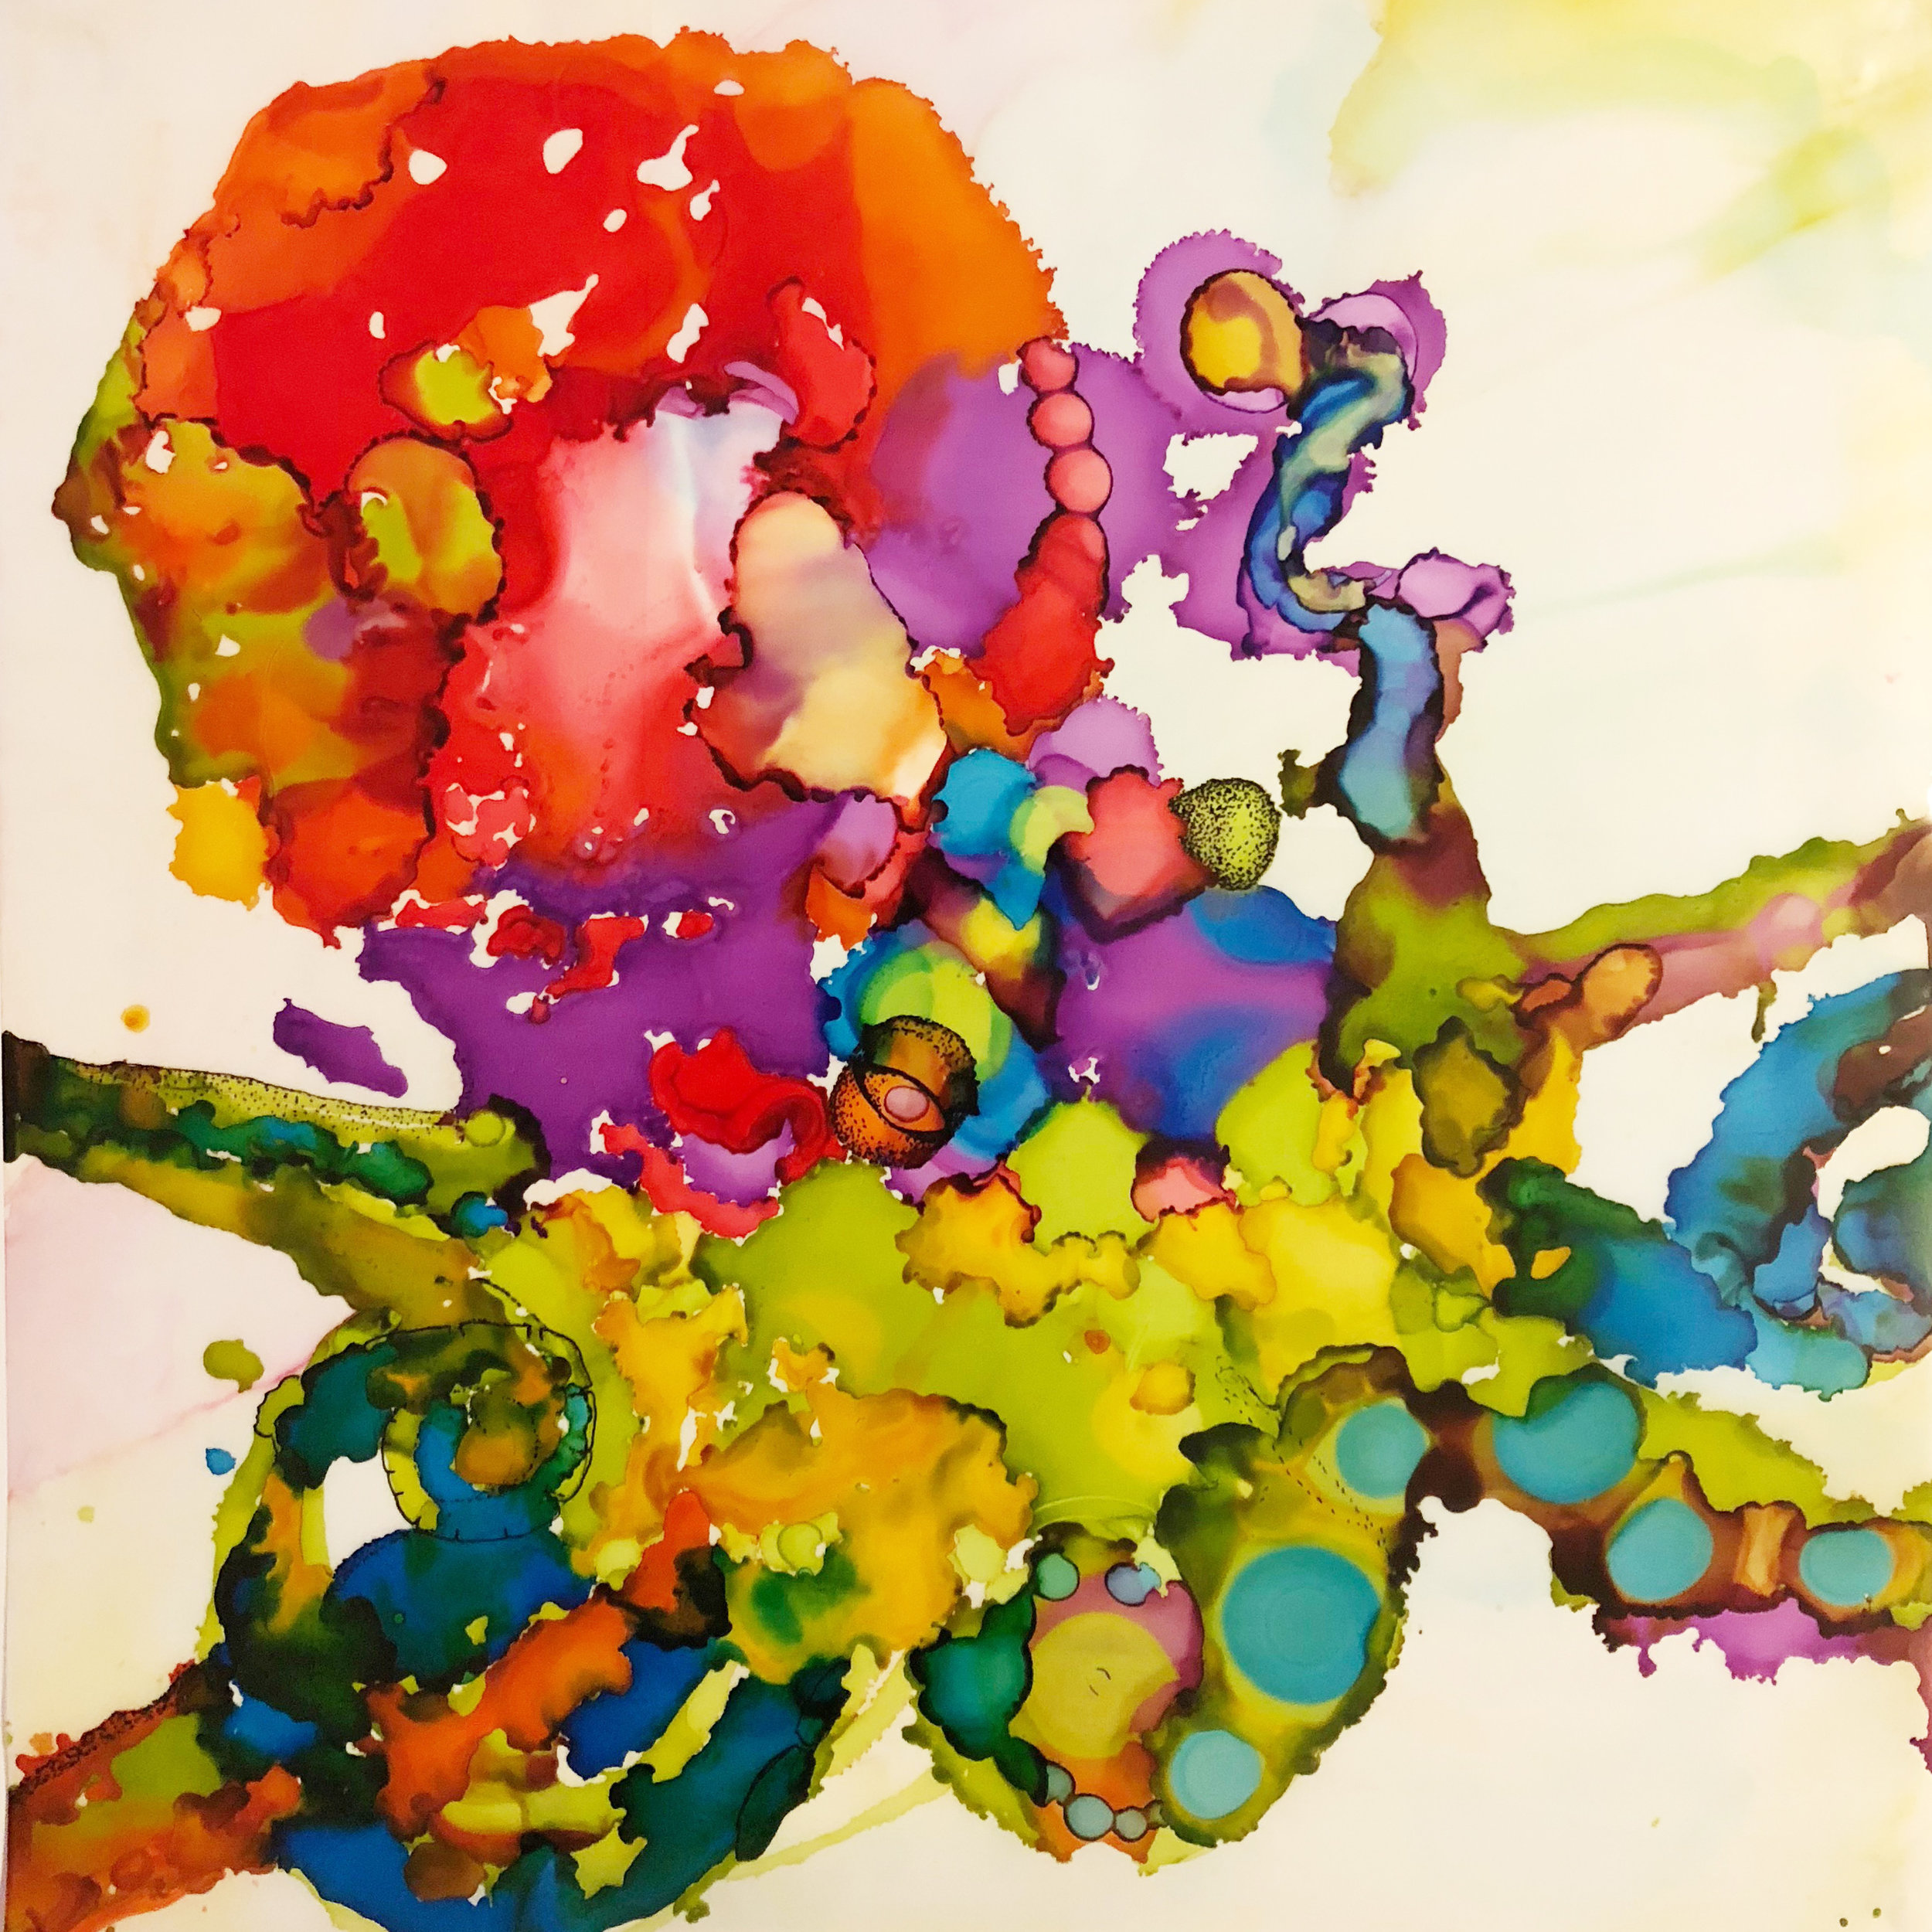 Abstract Octopus, alcohol ink & pen